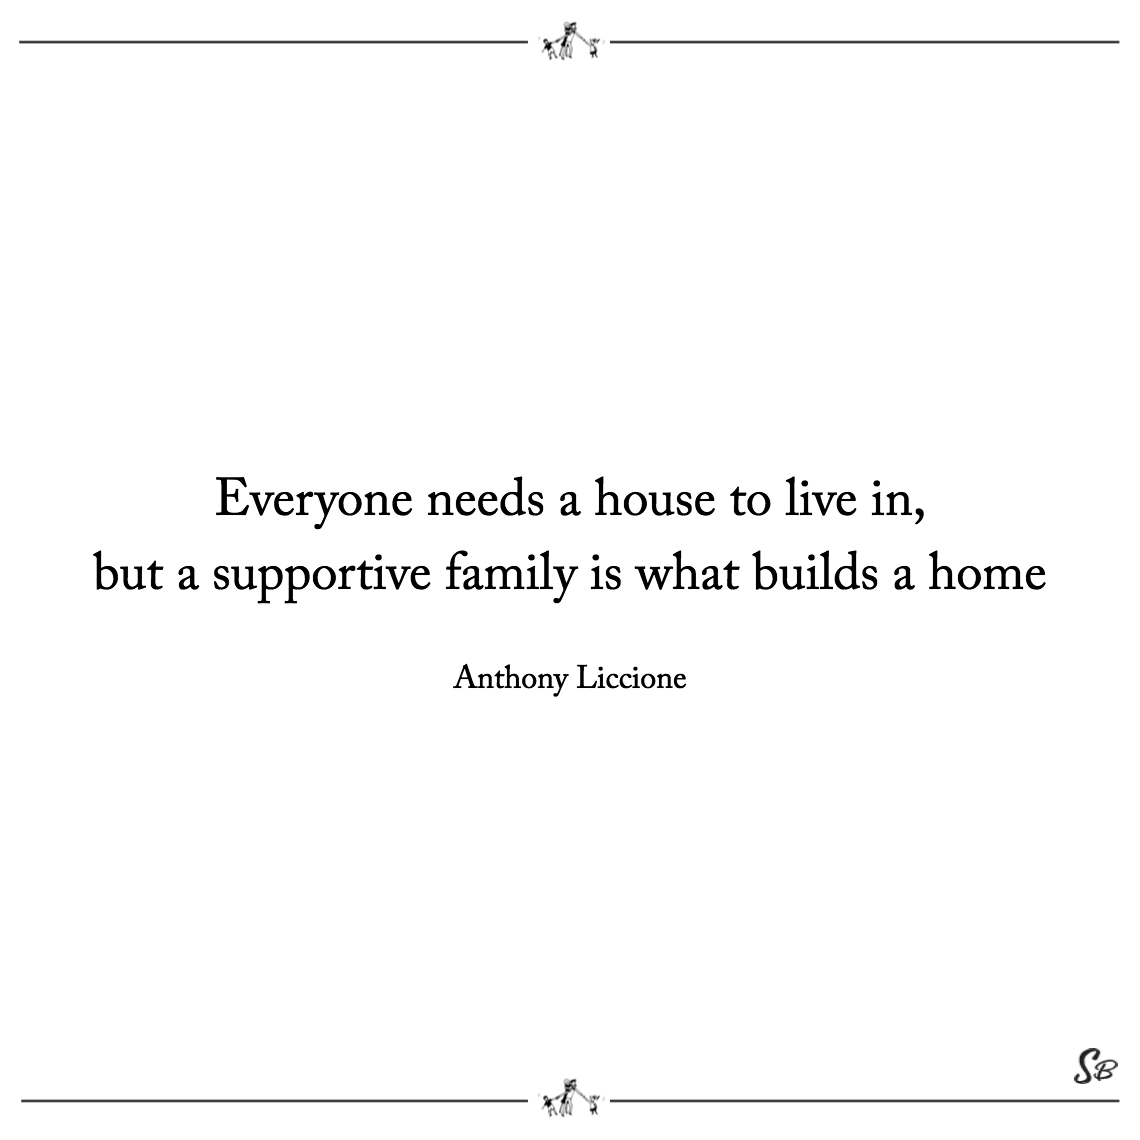 Everyone needs a house to live in, but a supportive family is what builds a home anthony liccione